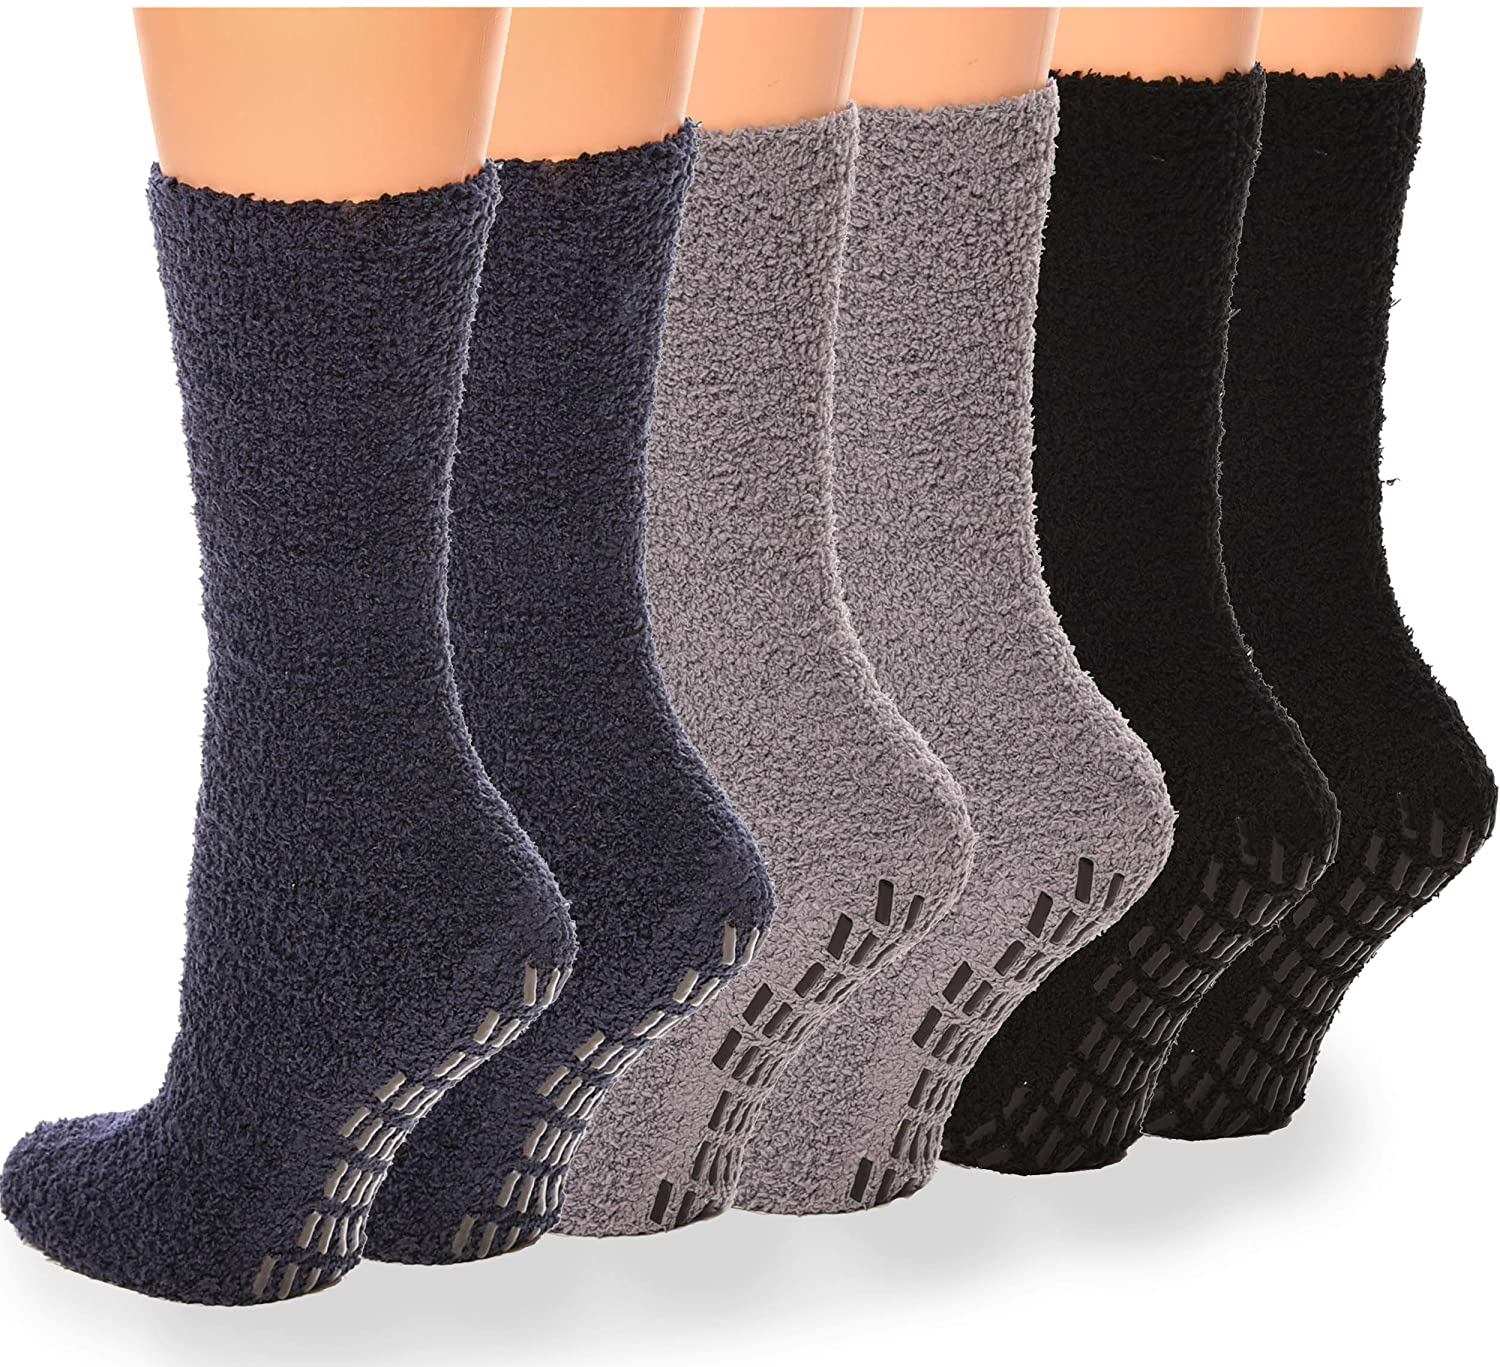 Debra Weitzner Non-slip Hospital Socks Fuzzy Slipper Grip Socks For Women Men 6 Pairs